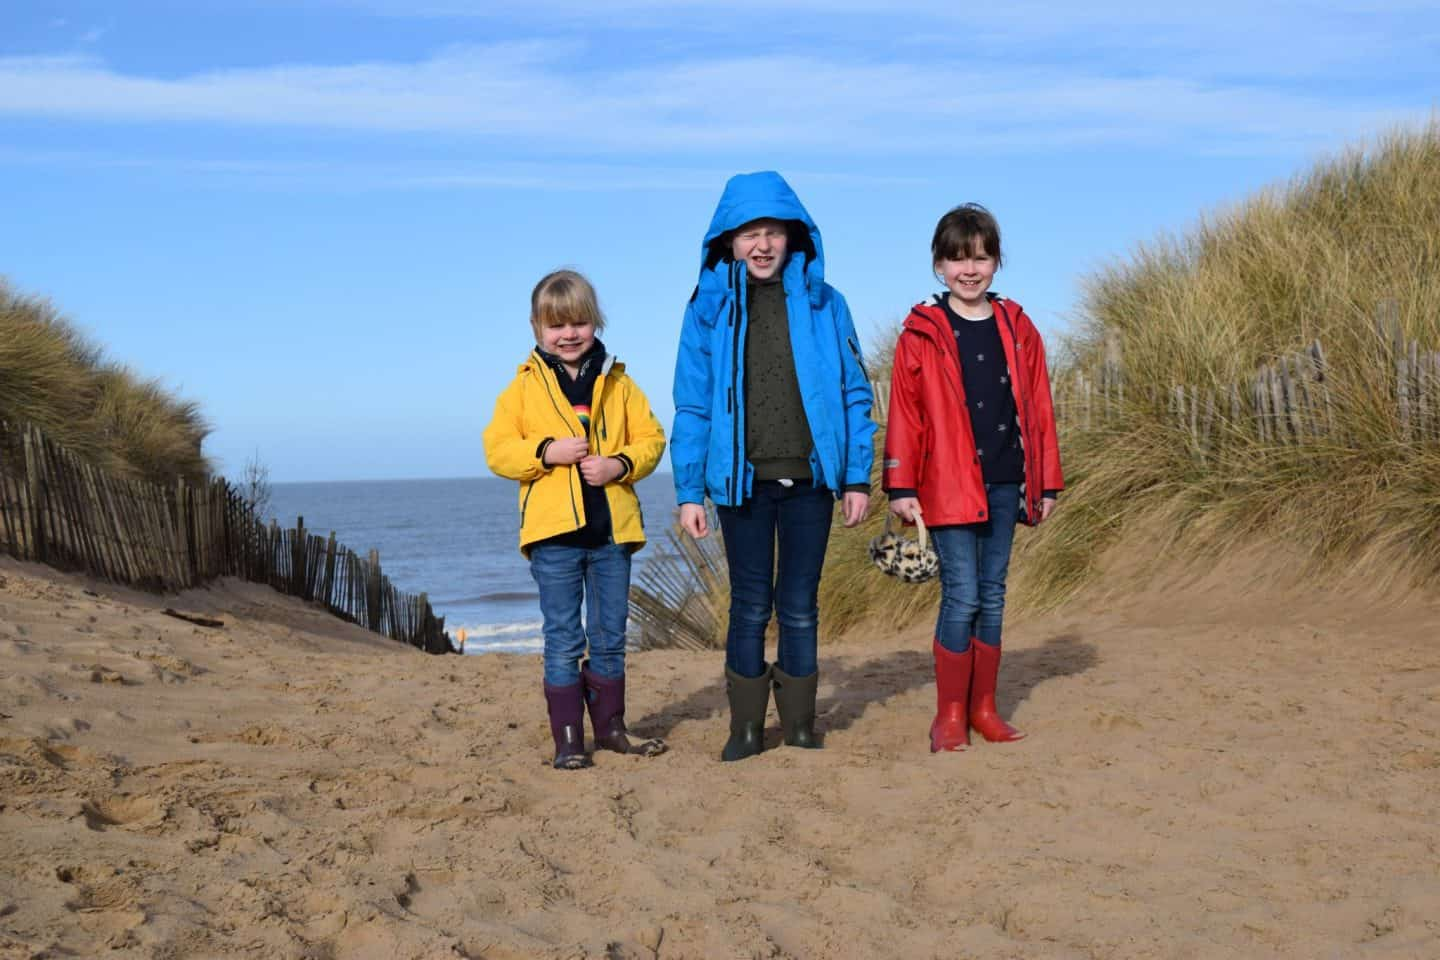 sand dunes at Formby